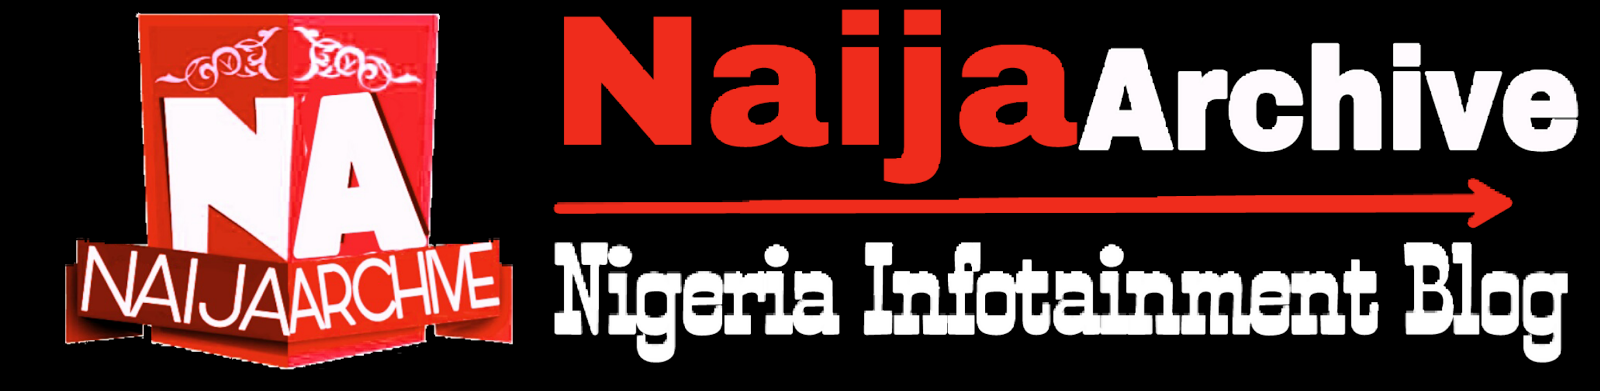 Naijaarchive | Infotainment Blog